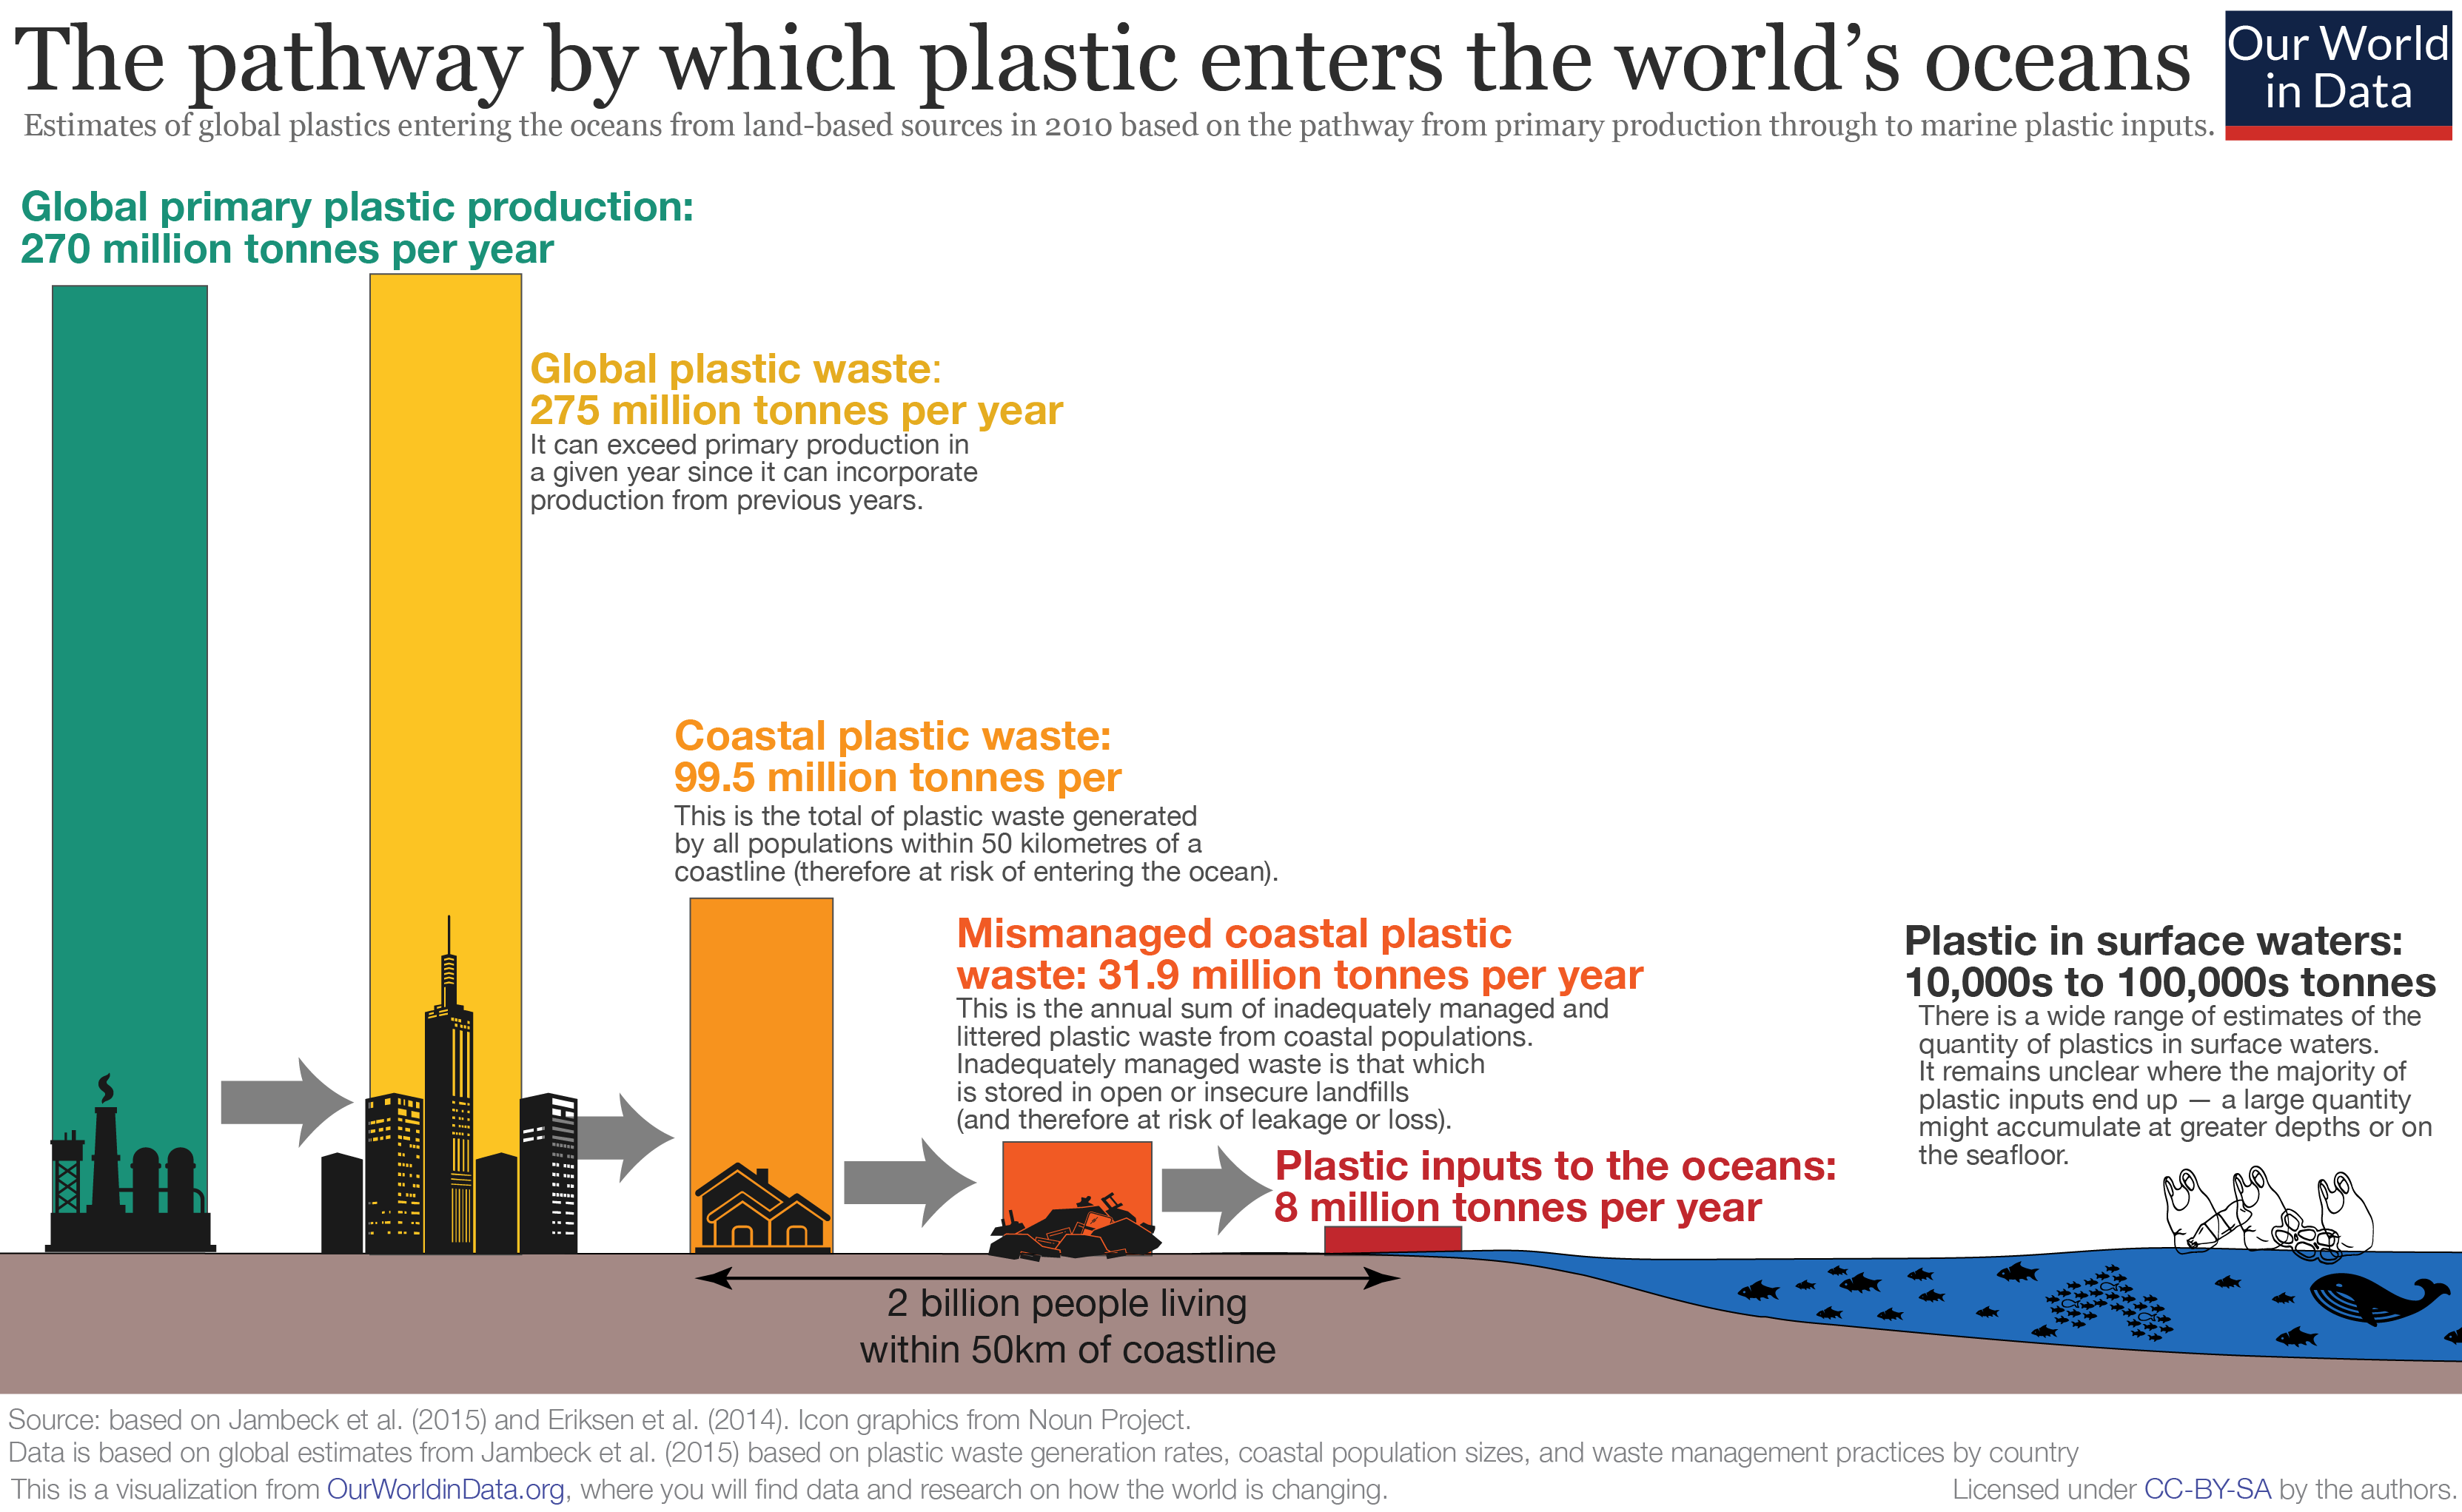 Visualisation of how plastic enters the worlds oceans